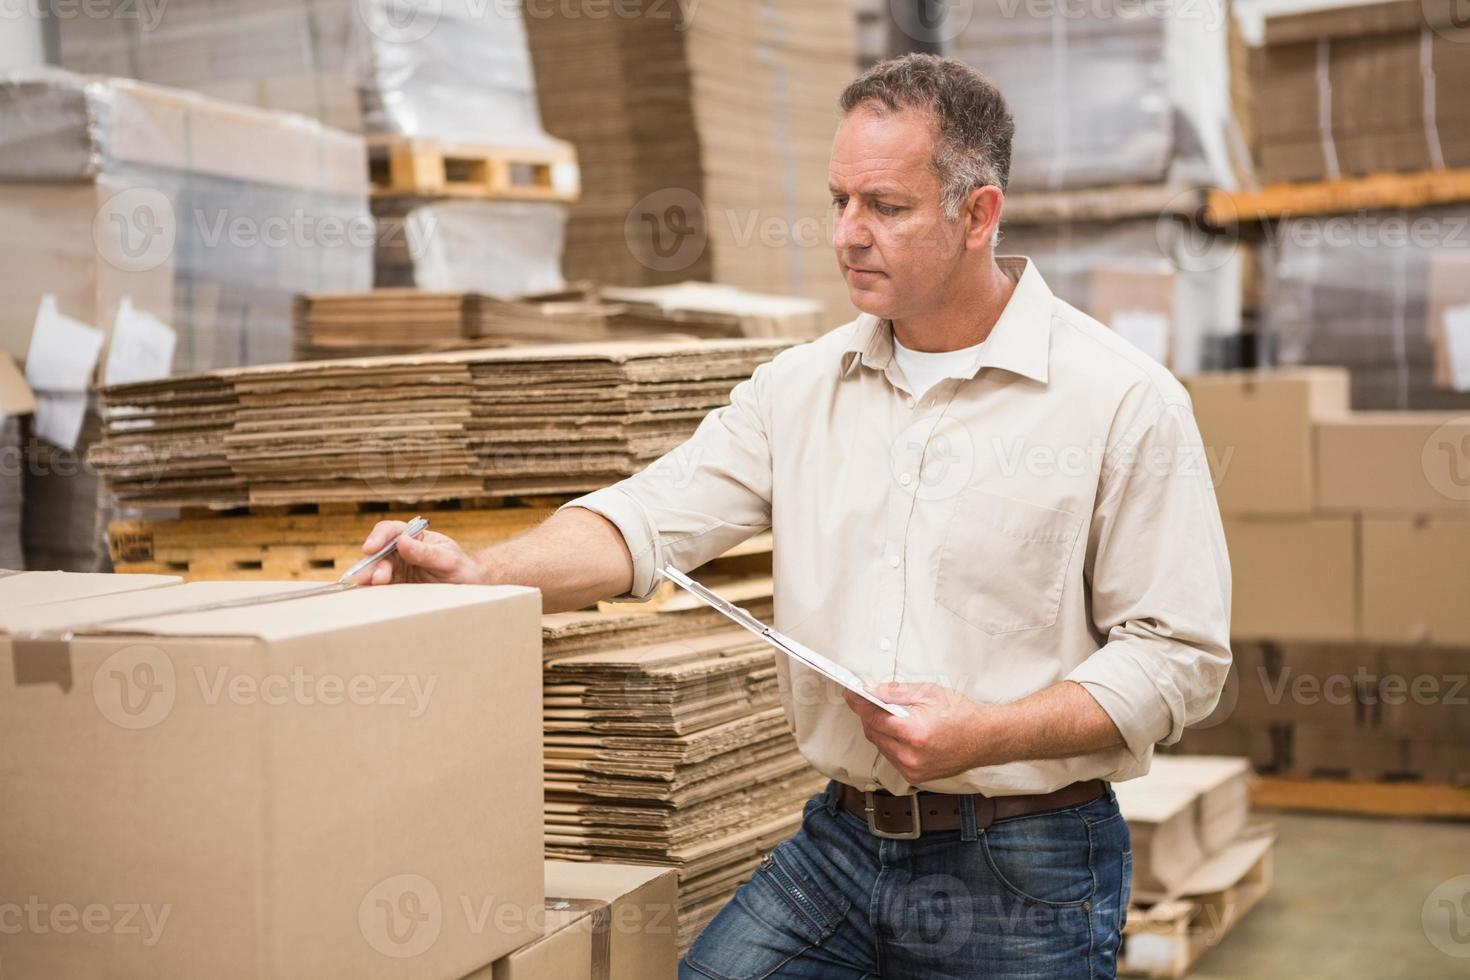 Warehouse worker checking his list on clipboard photo